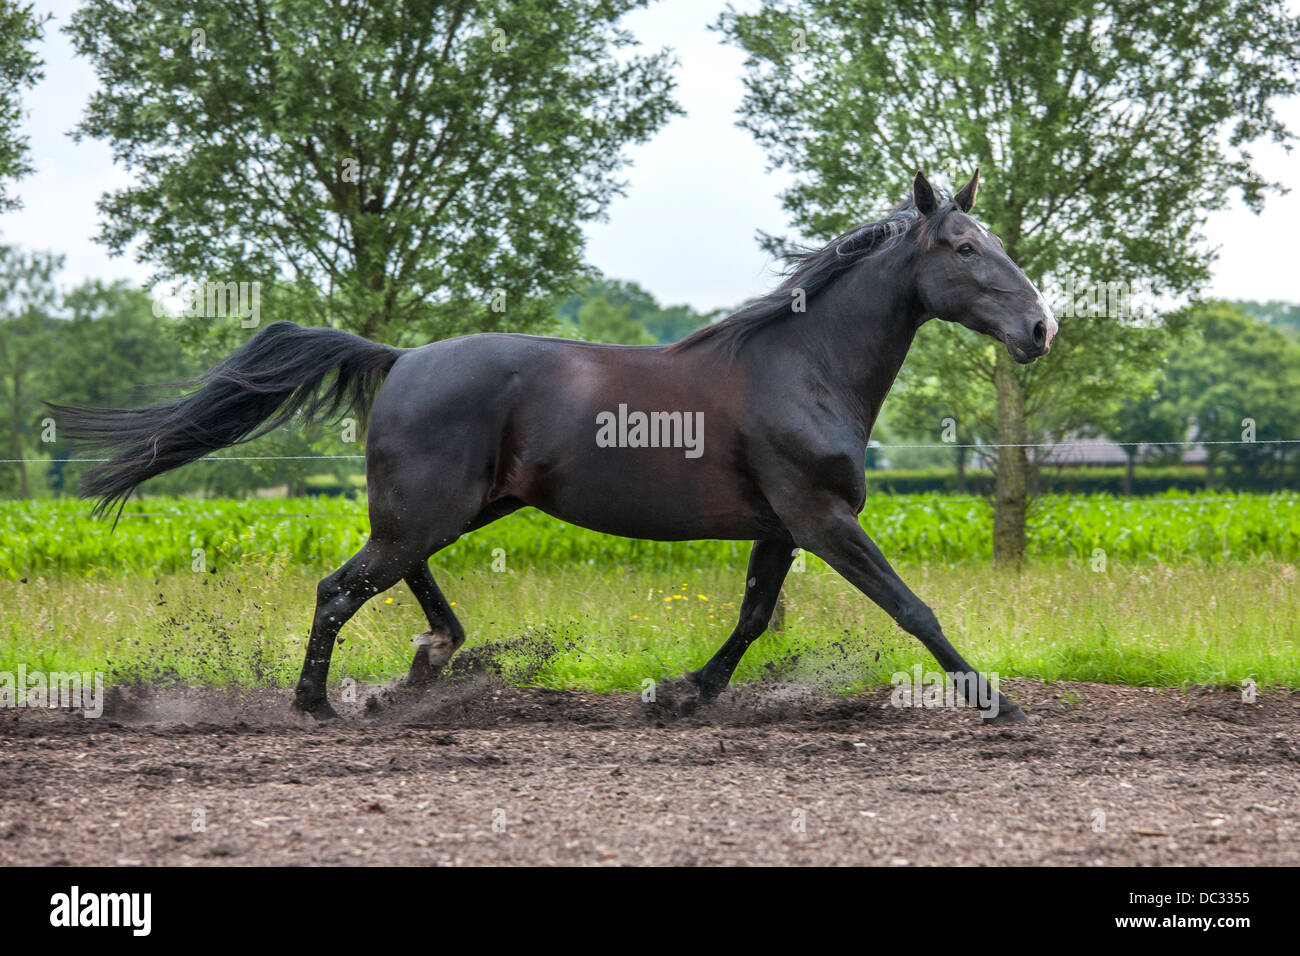 Brown horse trotting in field, trot is a two-beat gait involving diagonal pairs of legs - Stock Image